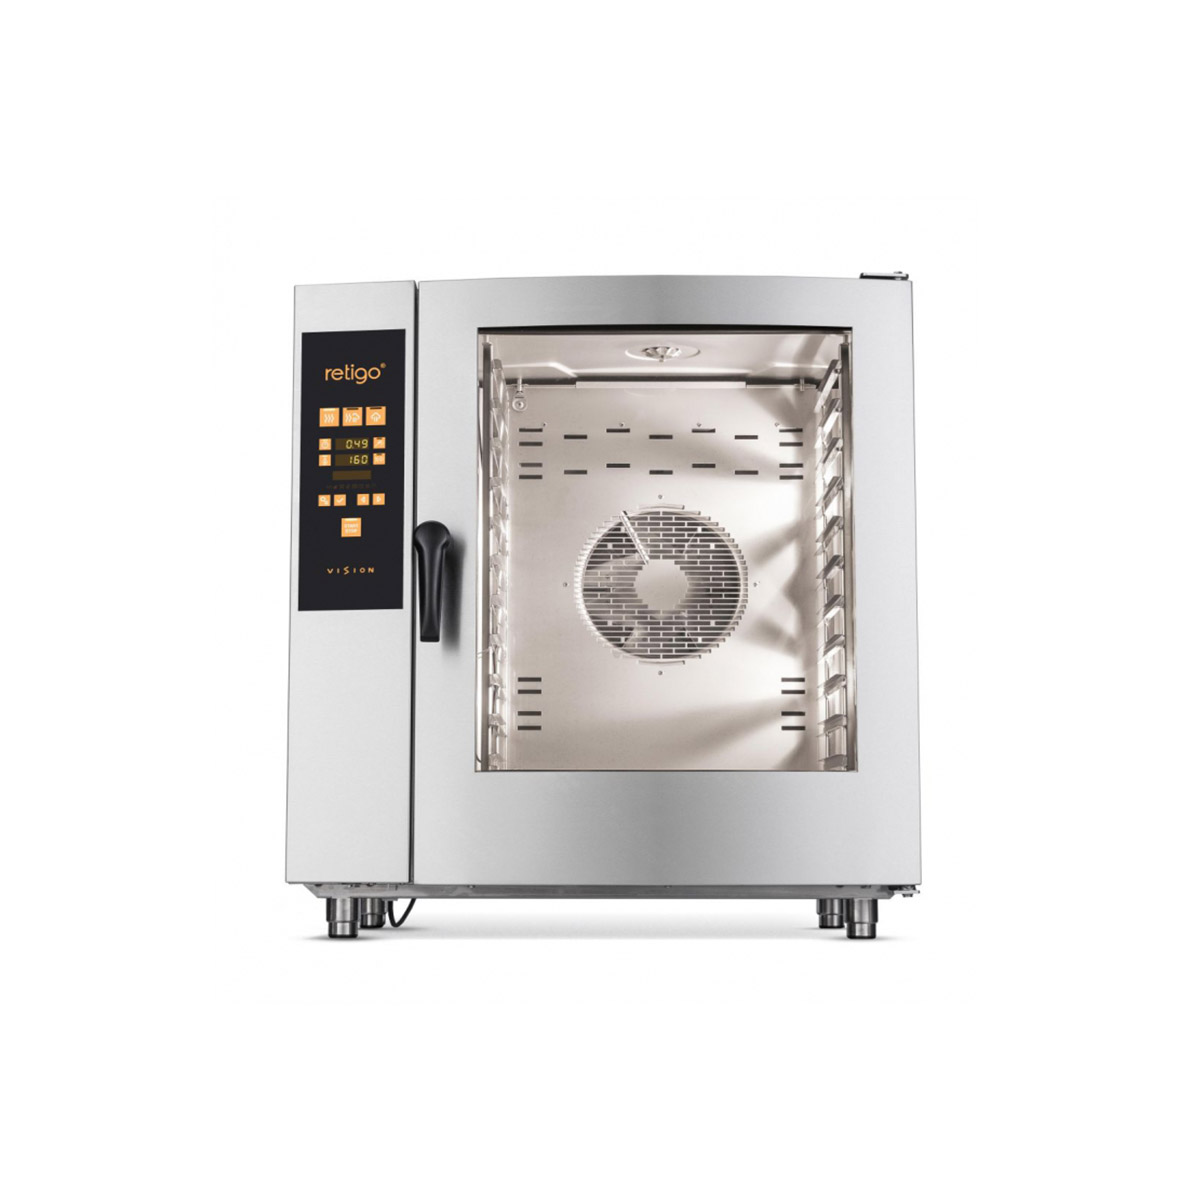 Retigo Orange Vision 10x Grid Combination Oven O1011ig